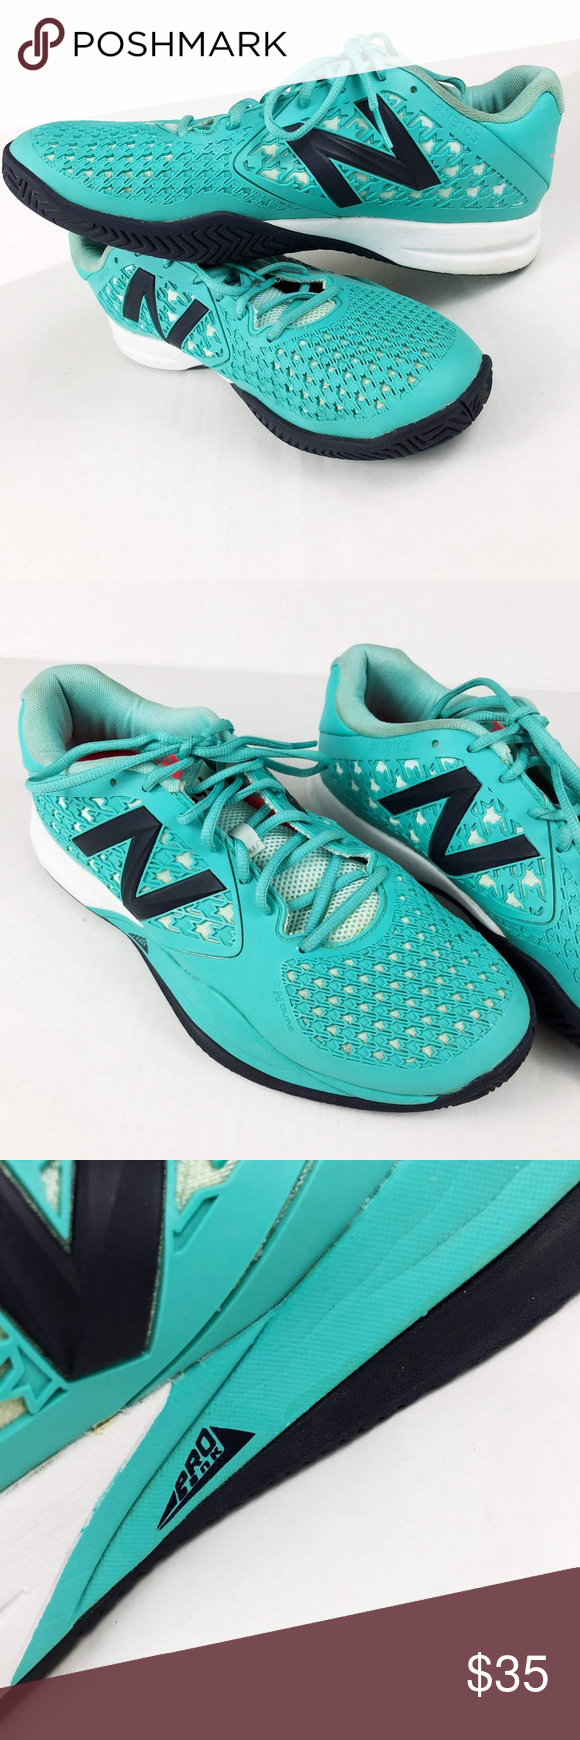 huge discount e396e bbe6d New Balance Turquoise #NB10S Revlite 996 Sneakers New ...